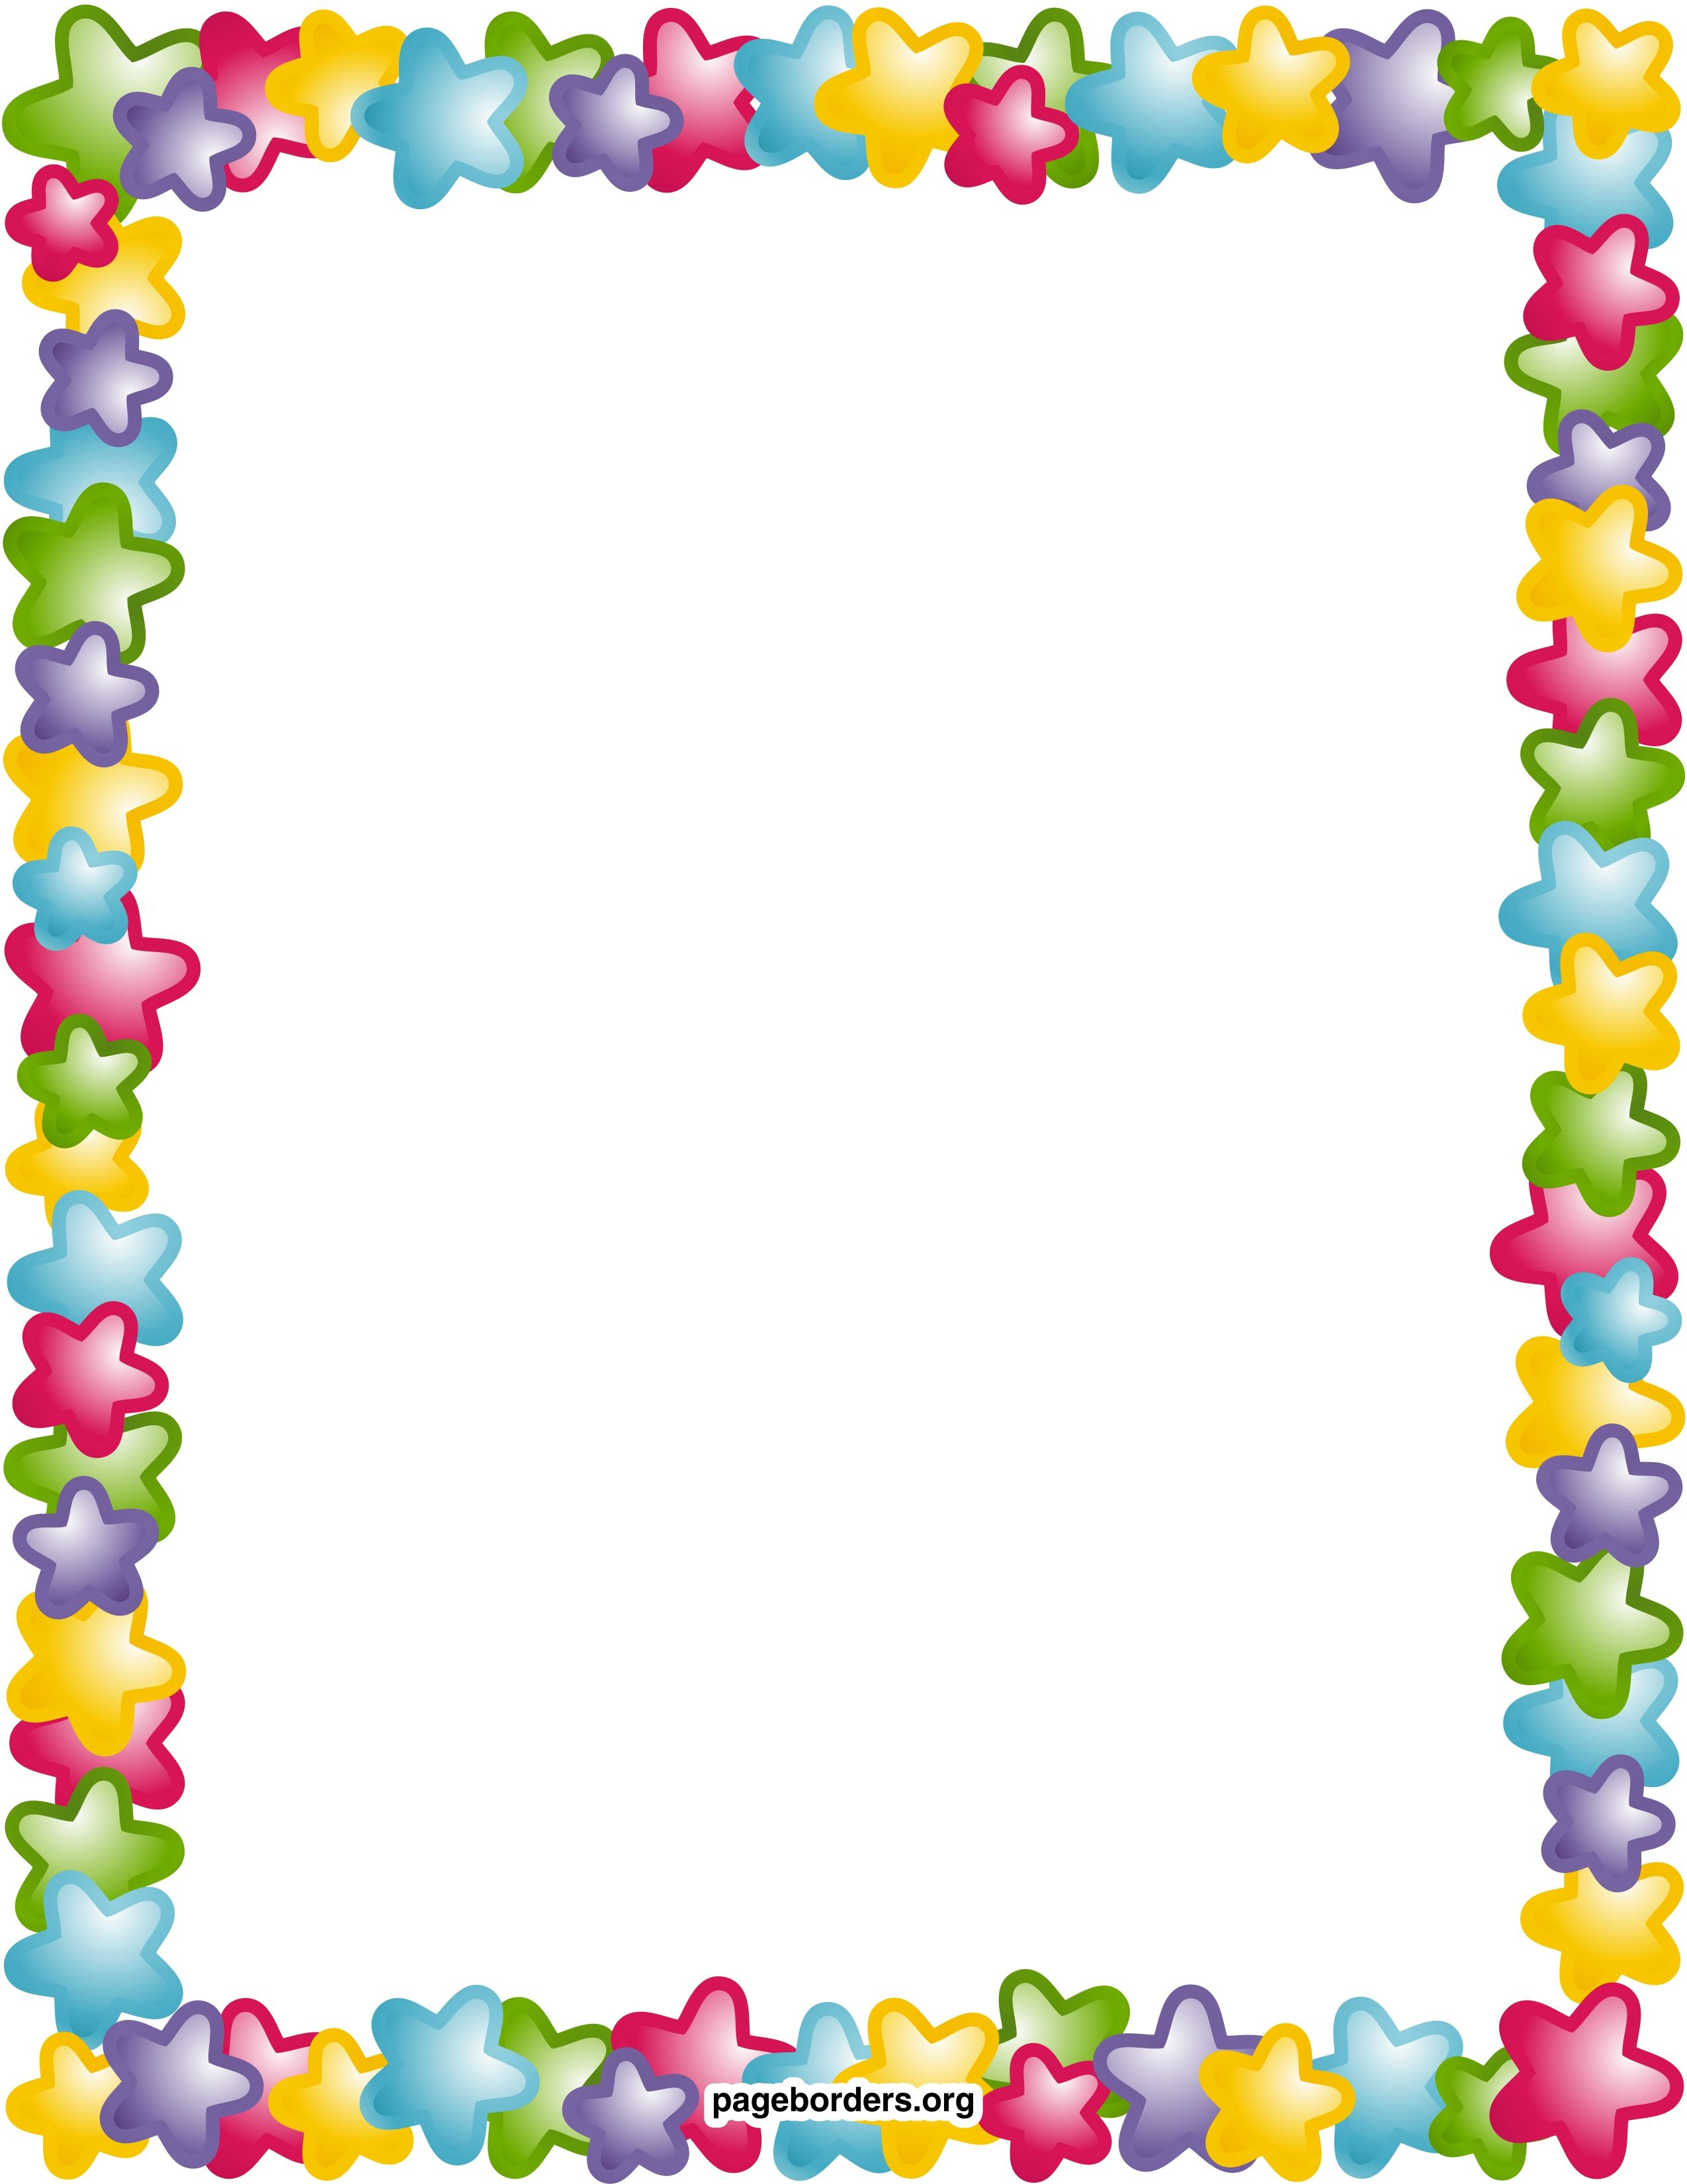 Remarkable Decoration Free Printable Borders And Frames Clip Art - Writing Borders Free Printable